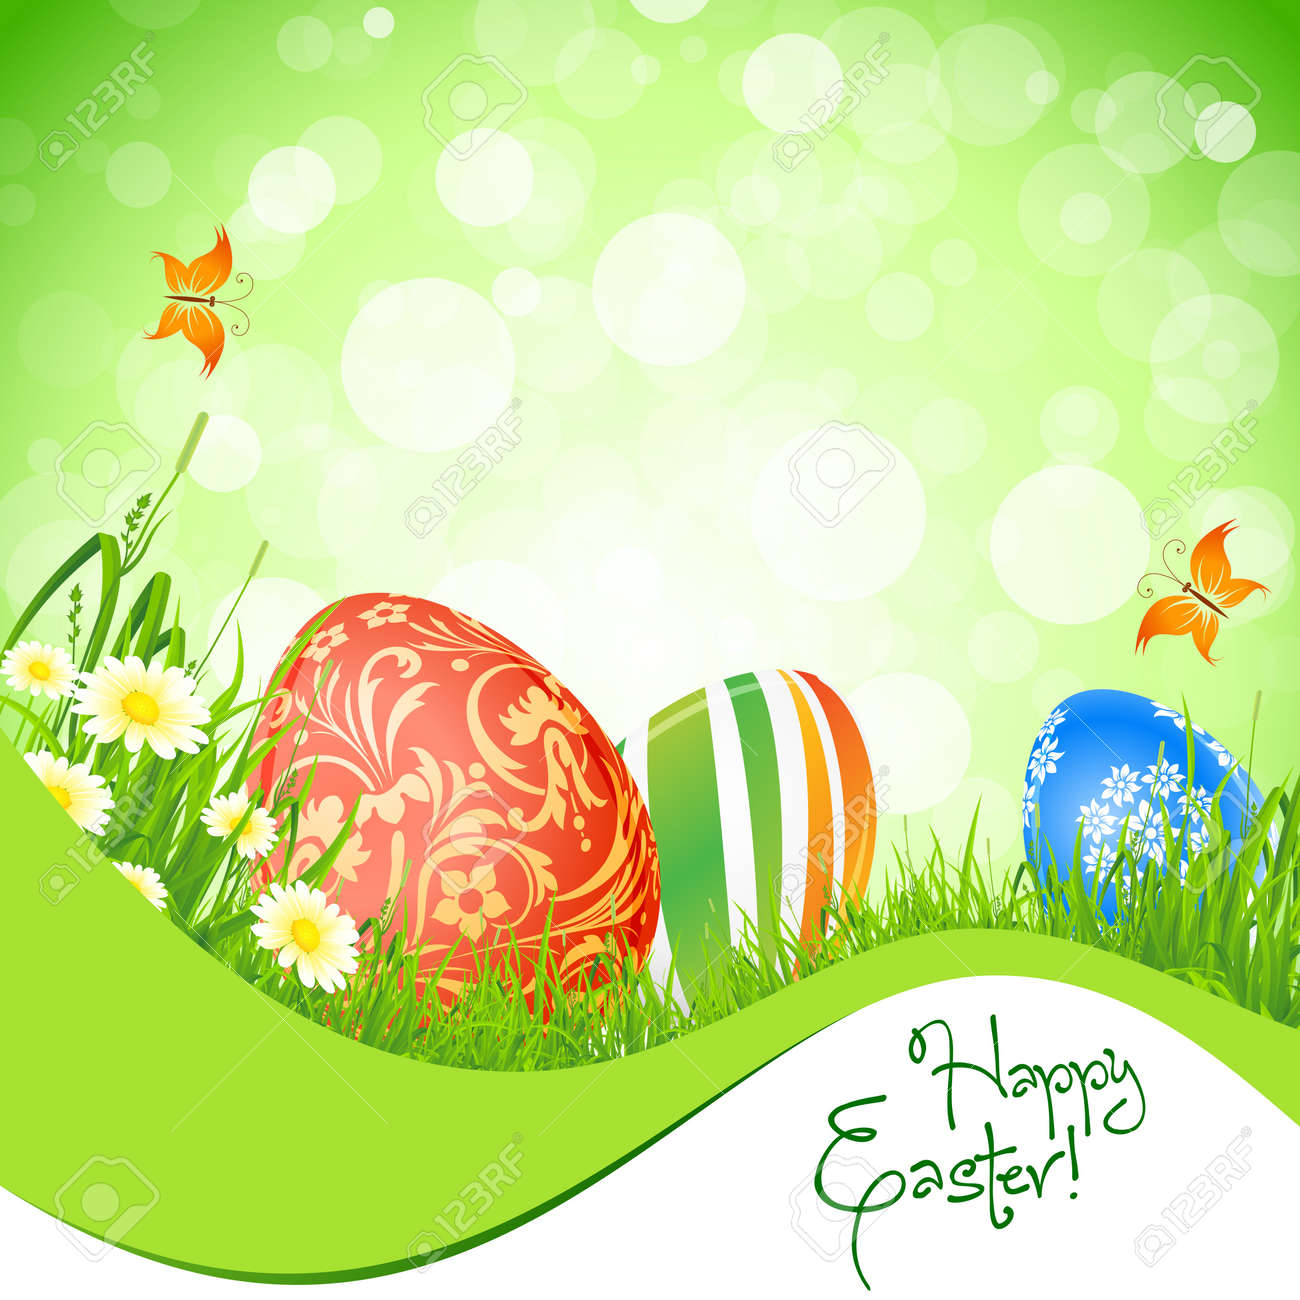 Beautiful Easter Background with Flowers and Butterfly Stock Vector - 17588672